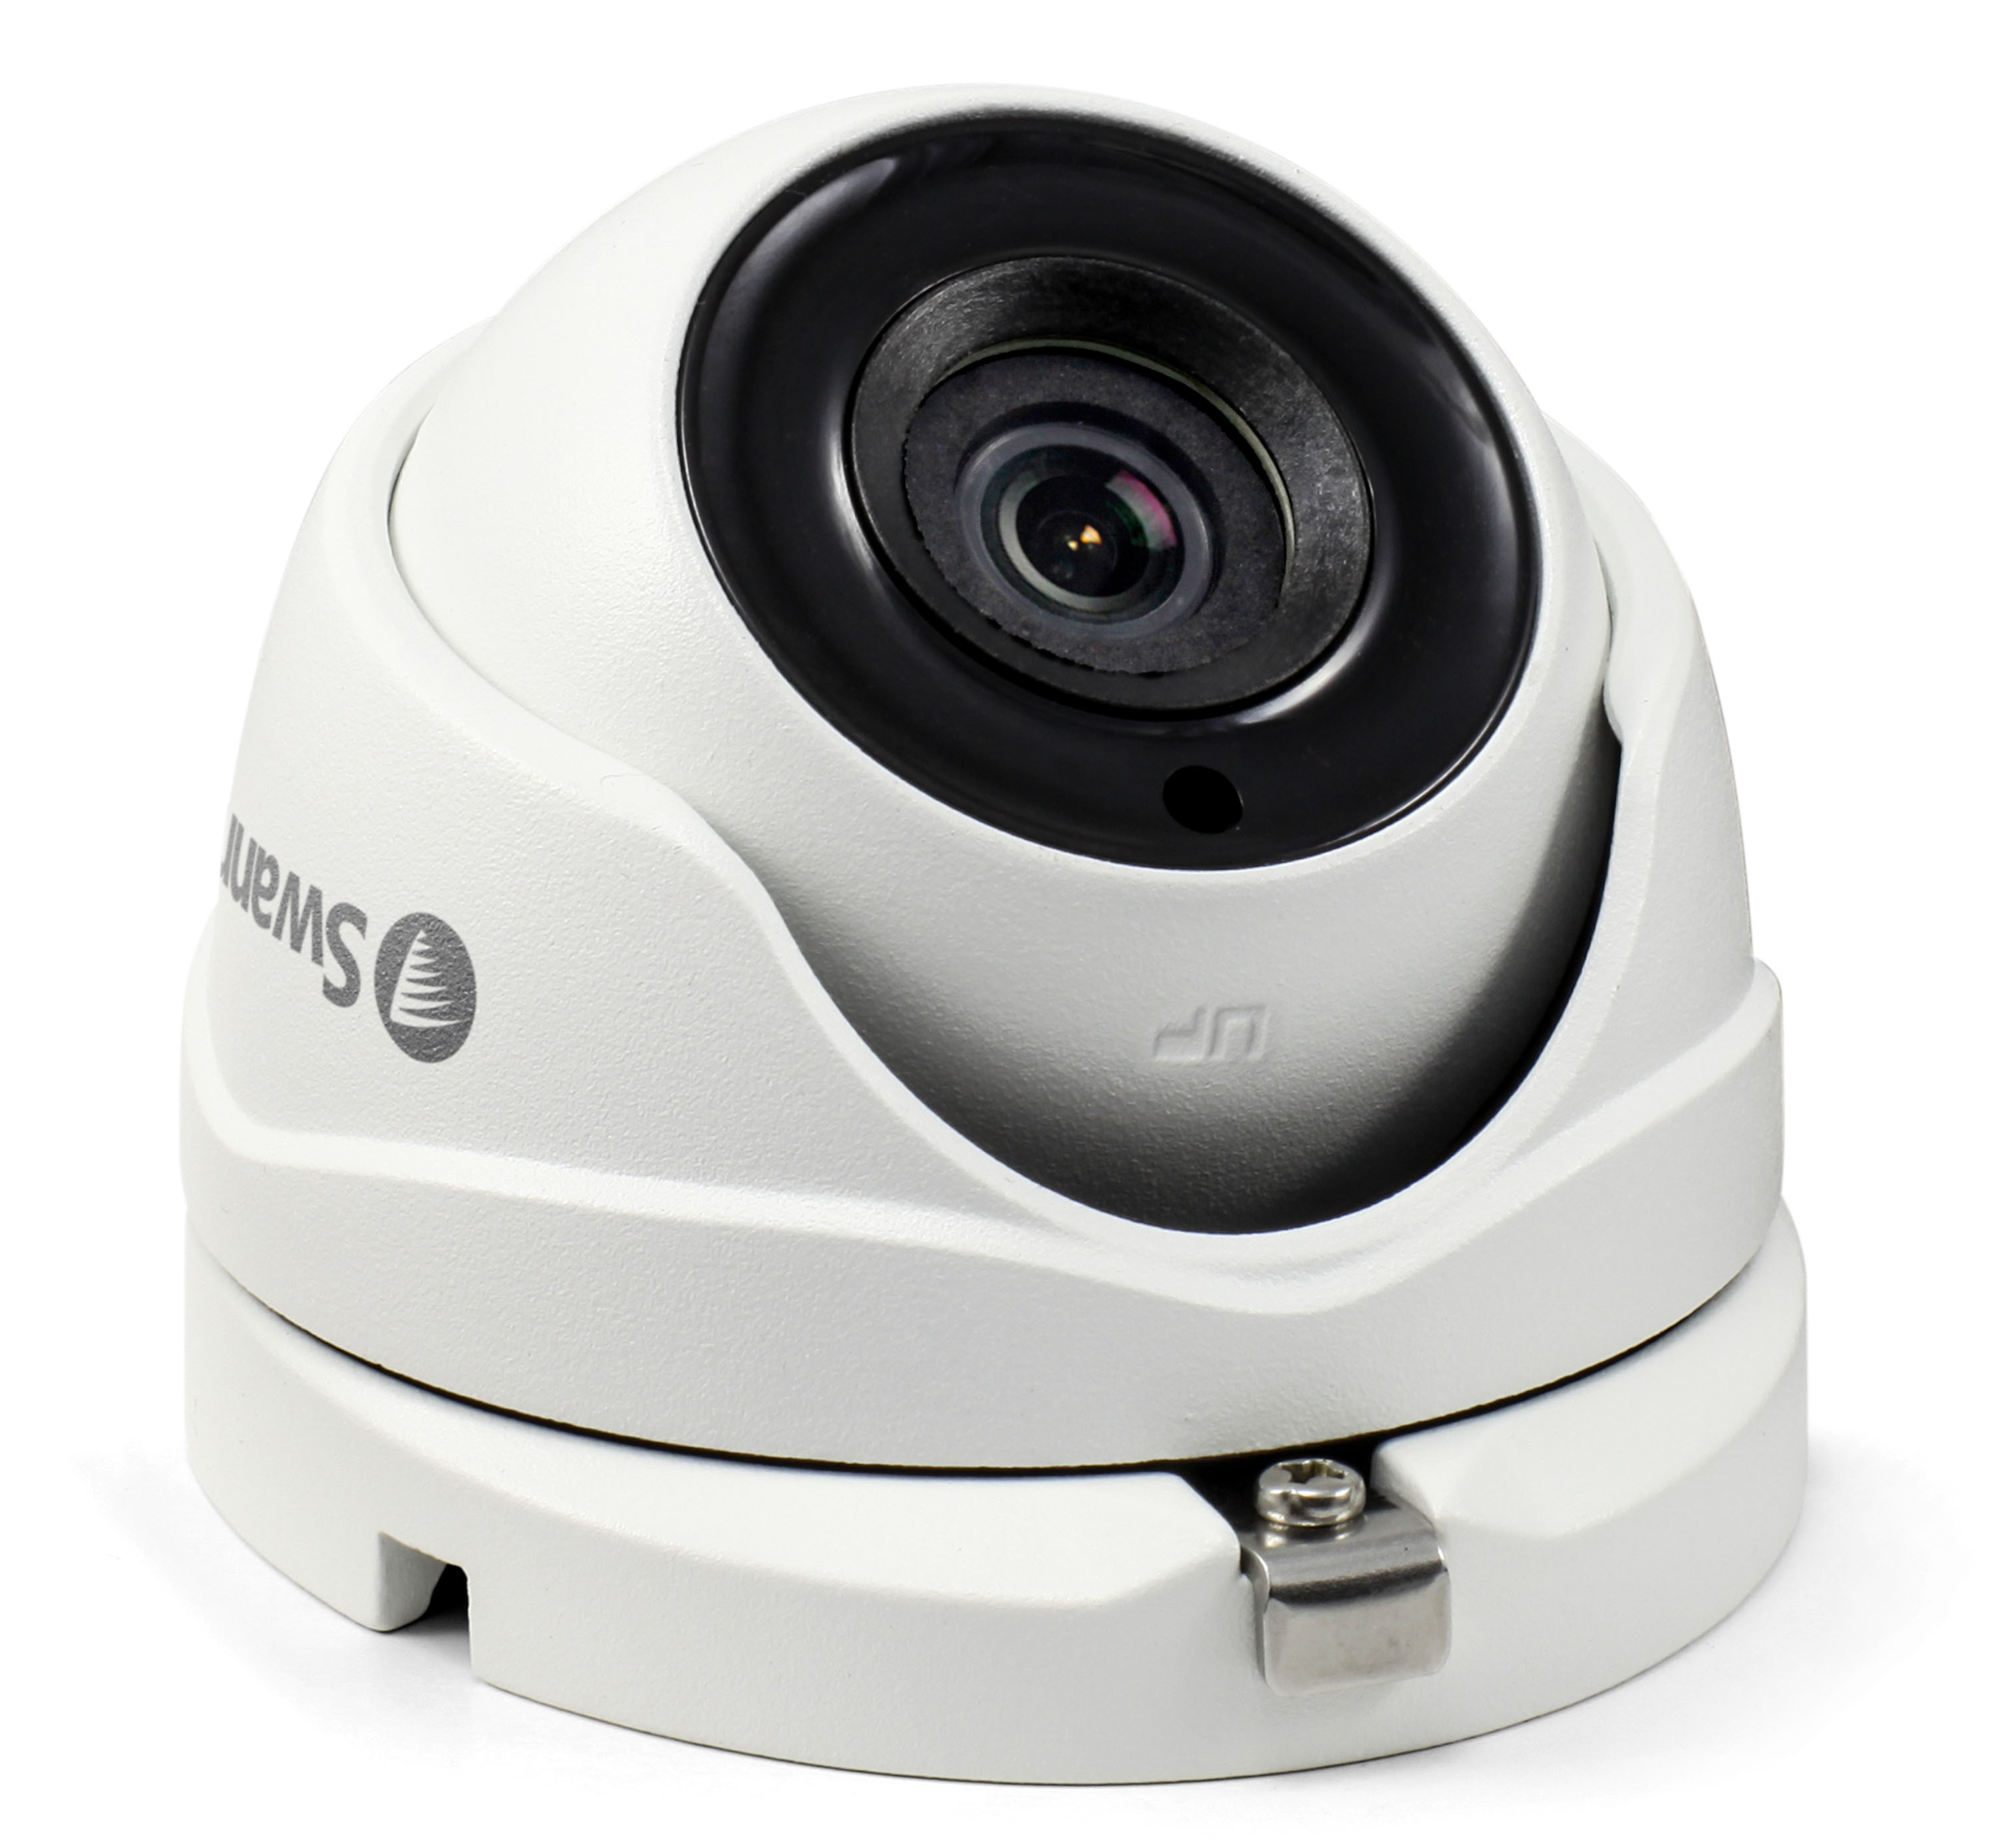 Swann 5mp Super Hd Dome Outdoor Security Camera Pro T891